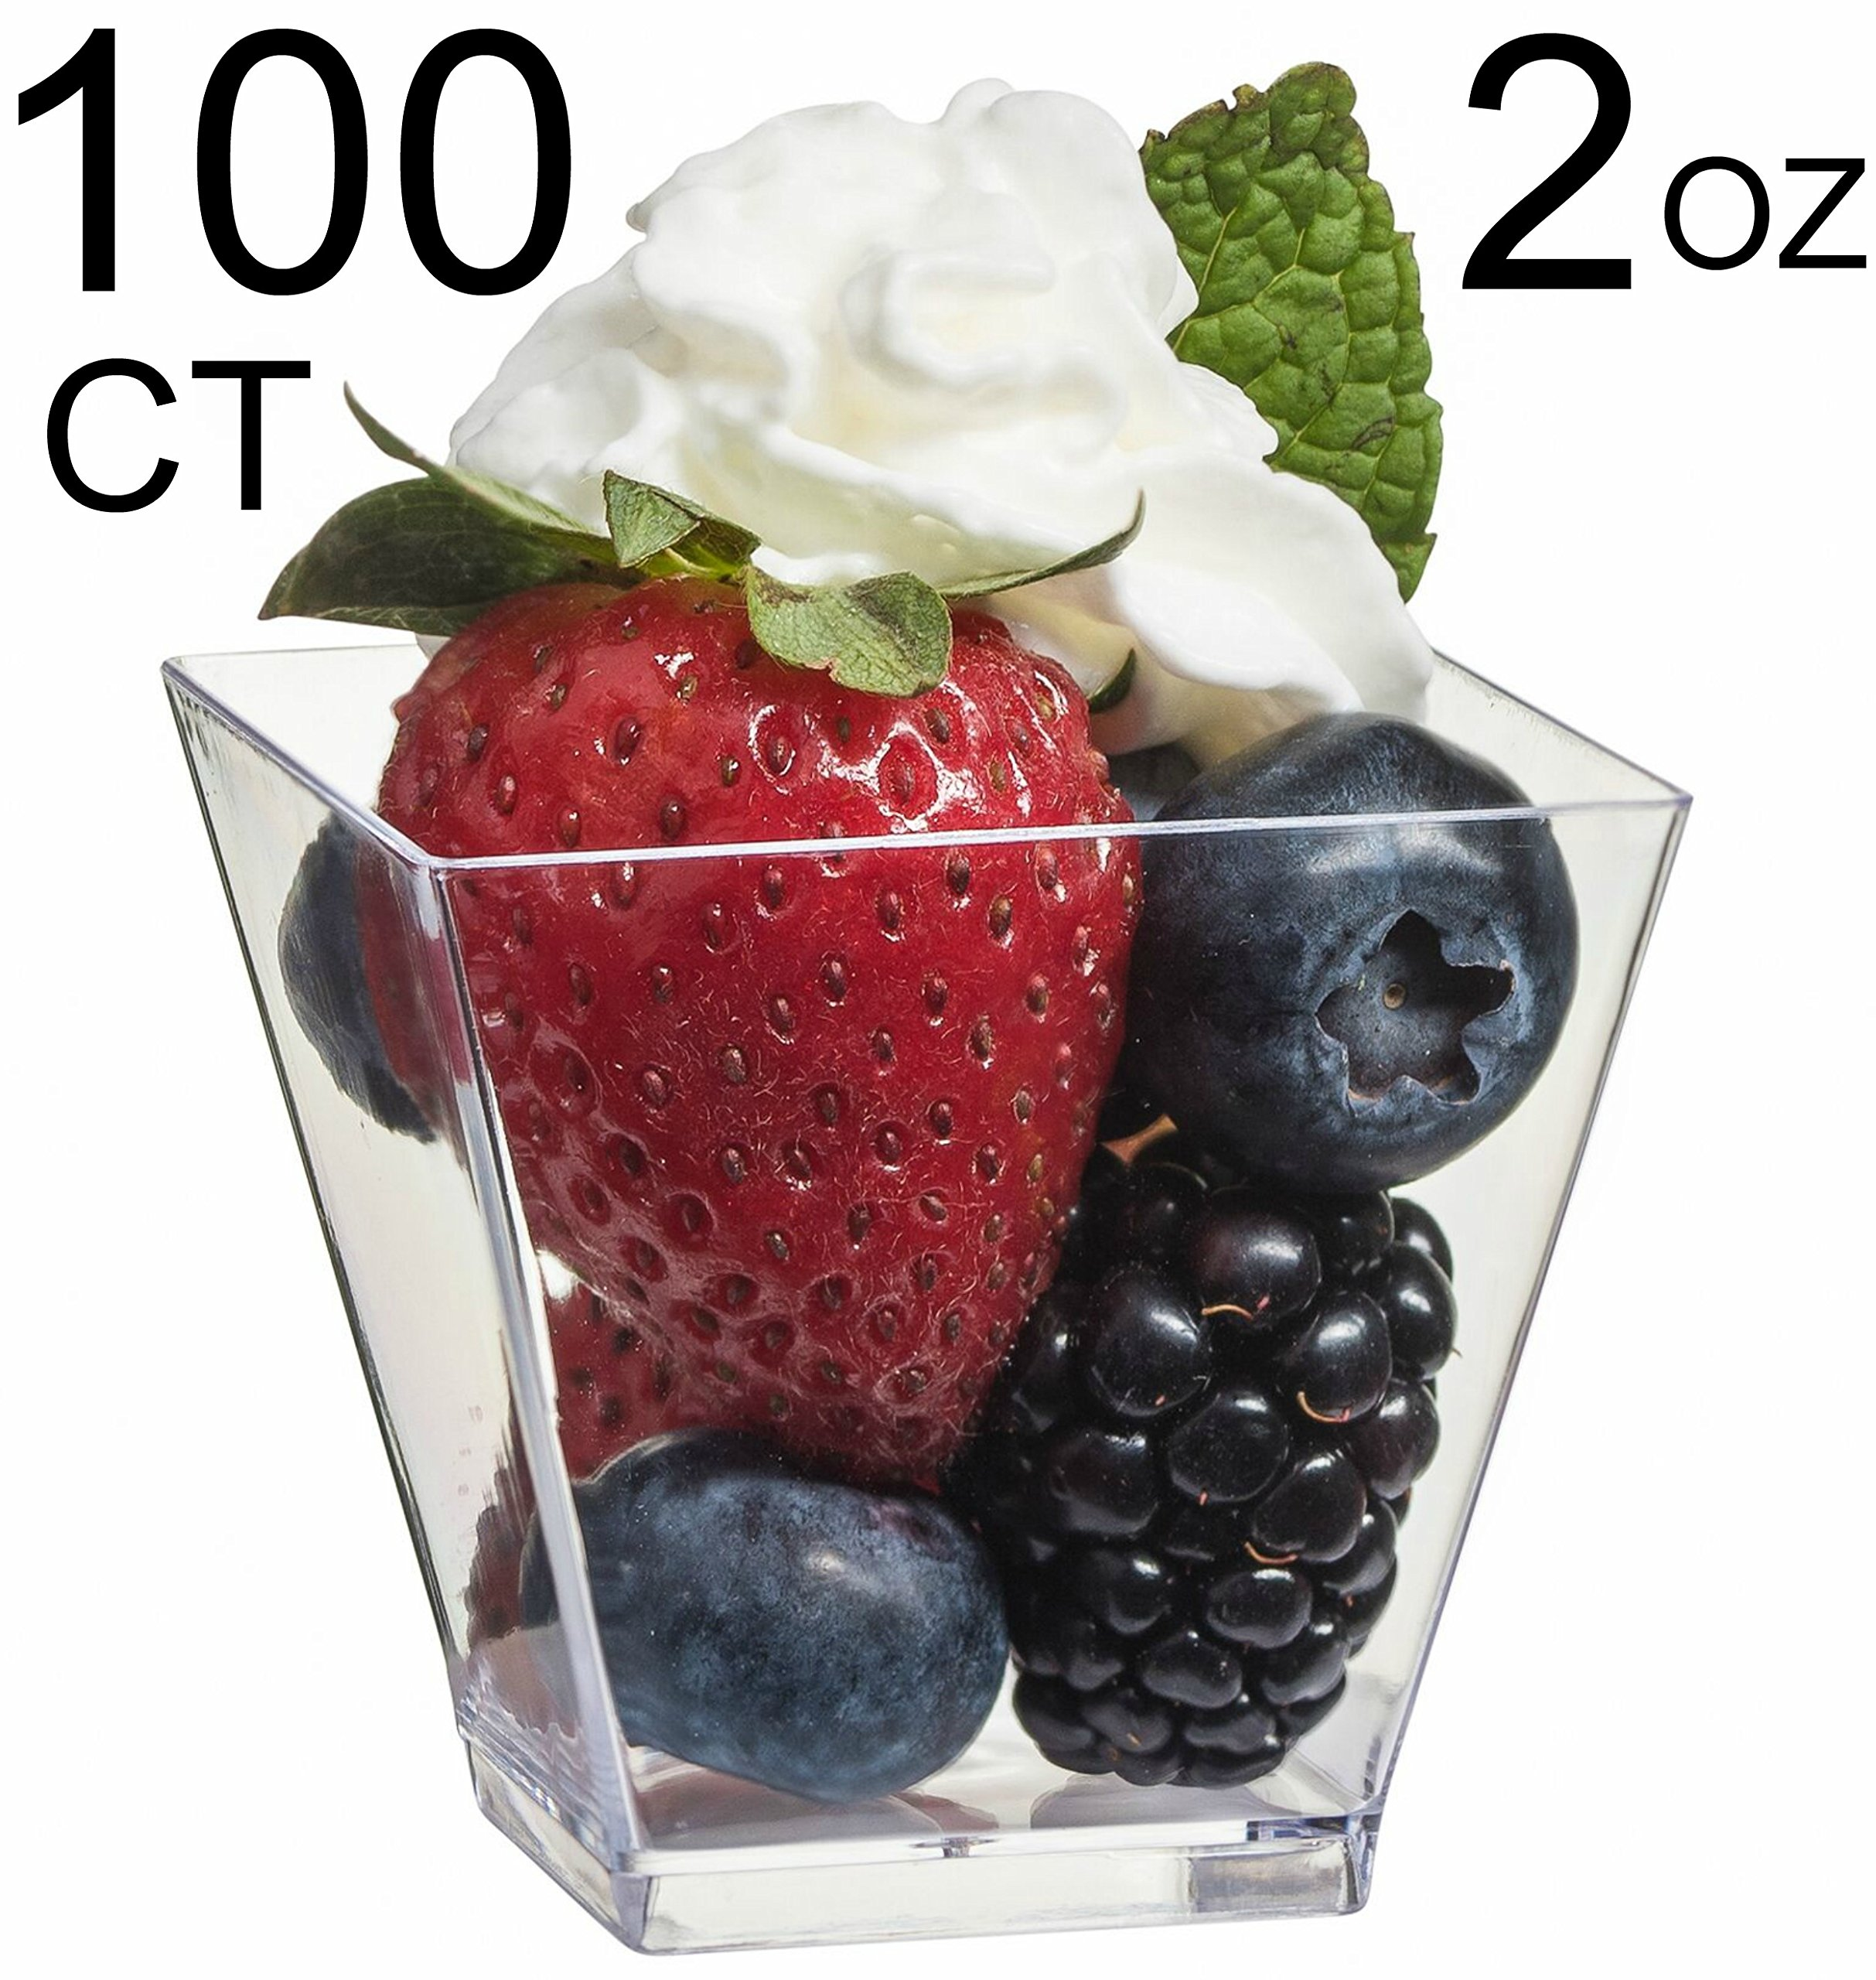 Zappy 100 Ct Elegant Square Mini Cube 2oz Clear Tasting Sample Shot Glasses 100 Ct Dessert Cups Disposable Plastic by zappy (Image #1)